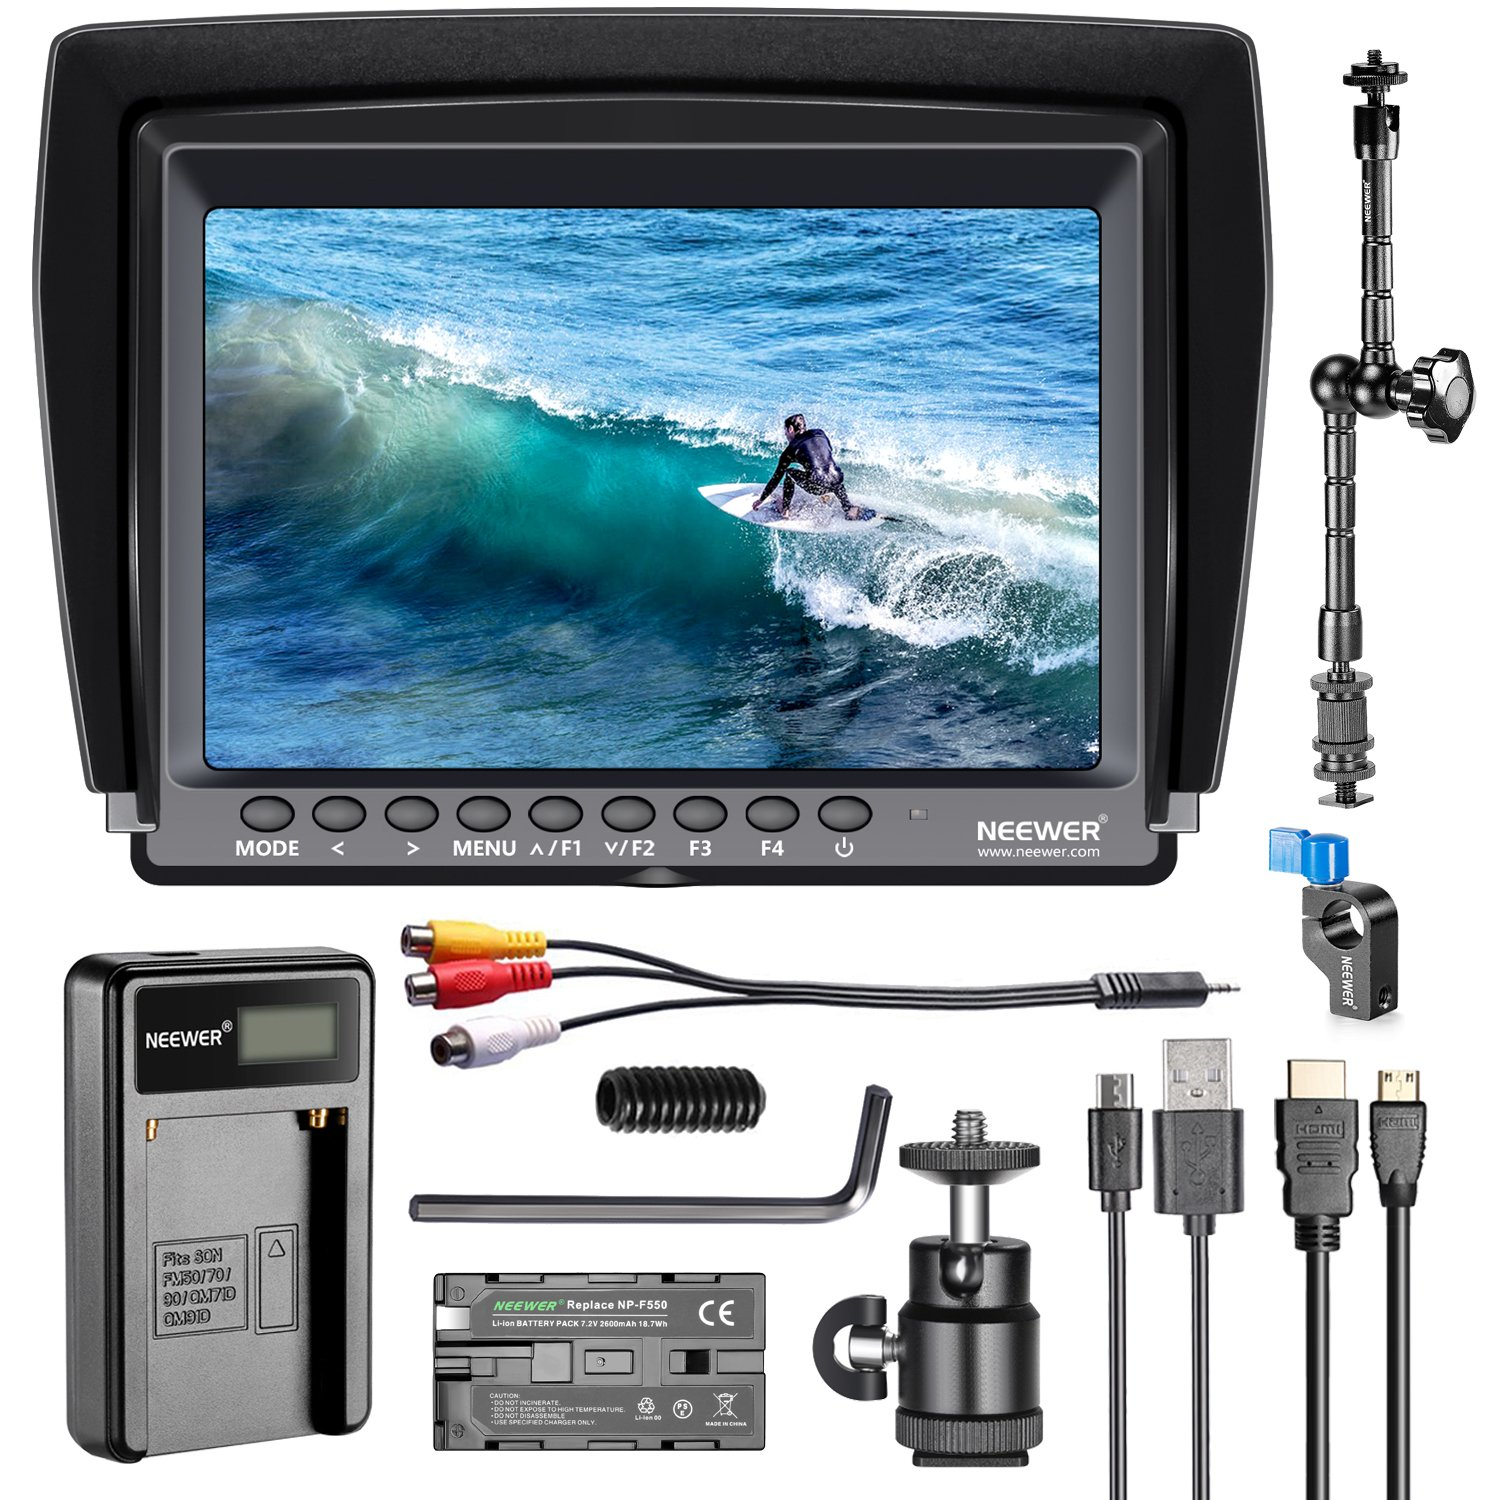 Neewer F100 7-inch 1280x800 IPS Screen Camera Field Monitor Kit: Support 4k input with 2600mAh Rechargeable Li-ion Battery, USB Battery Charger and 11.8-inch Magic Arm for DSLR Camera/Camcorder by Neewer (Image #1)